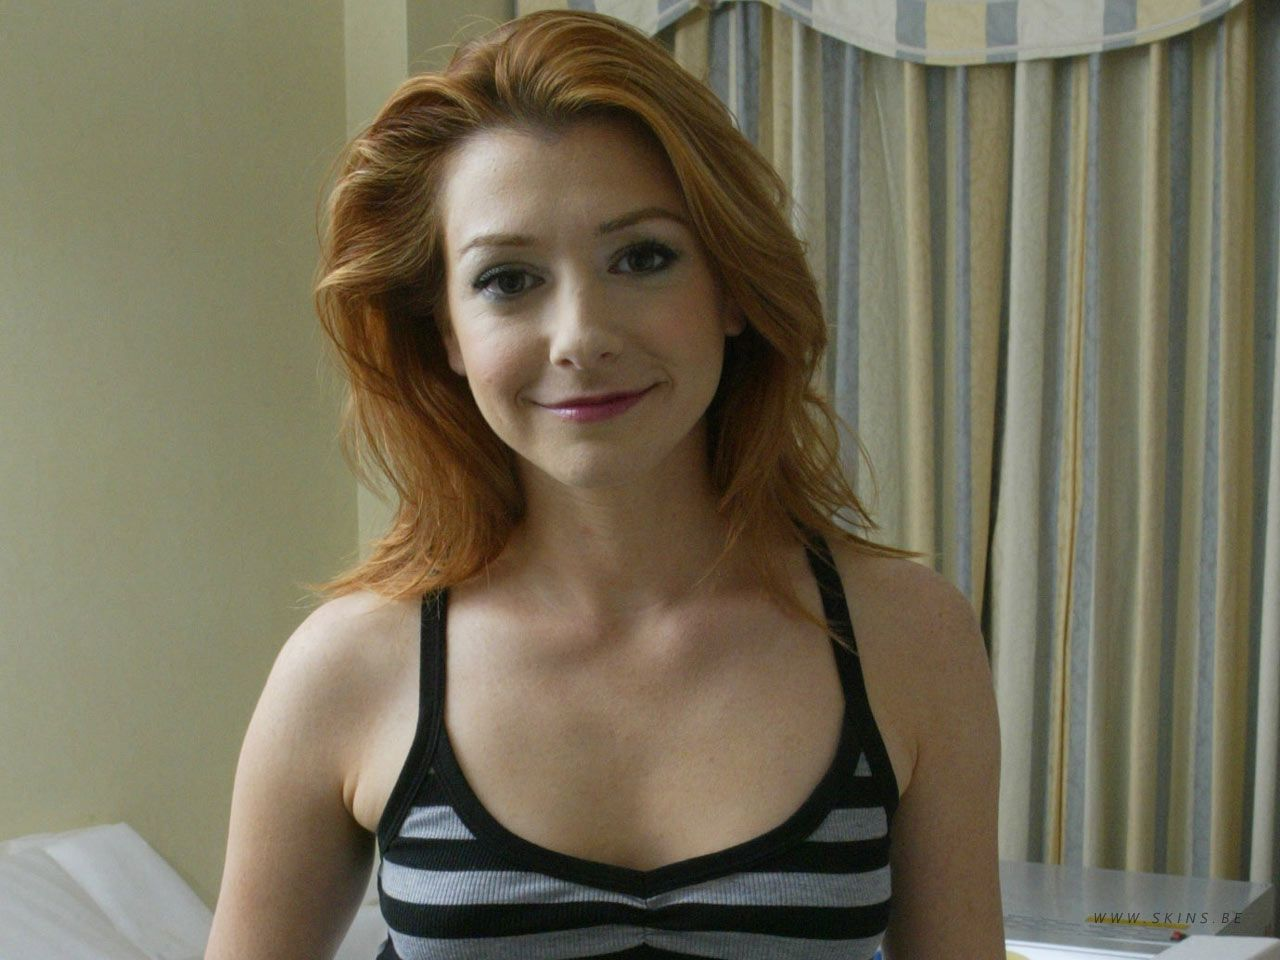 Like alyson hannigan nude pic know, you